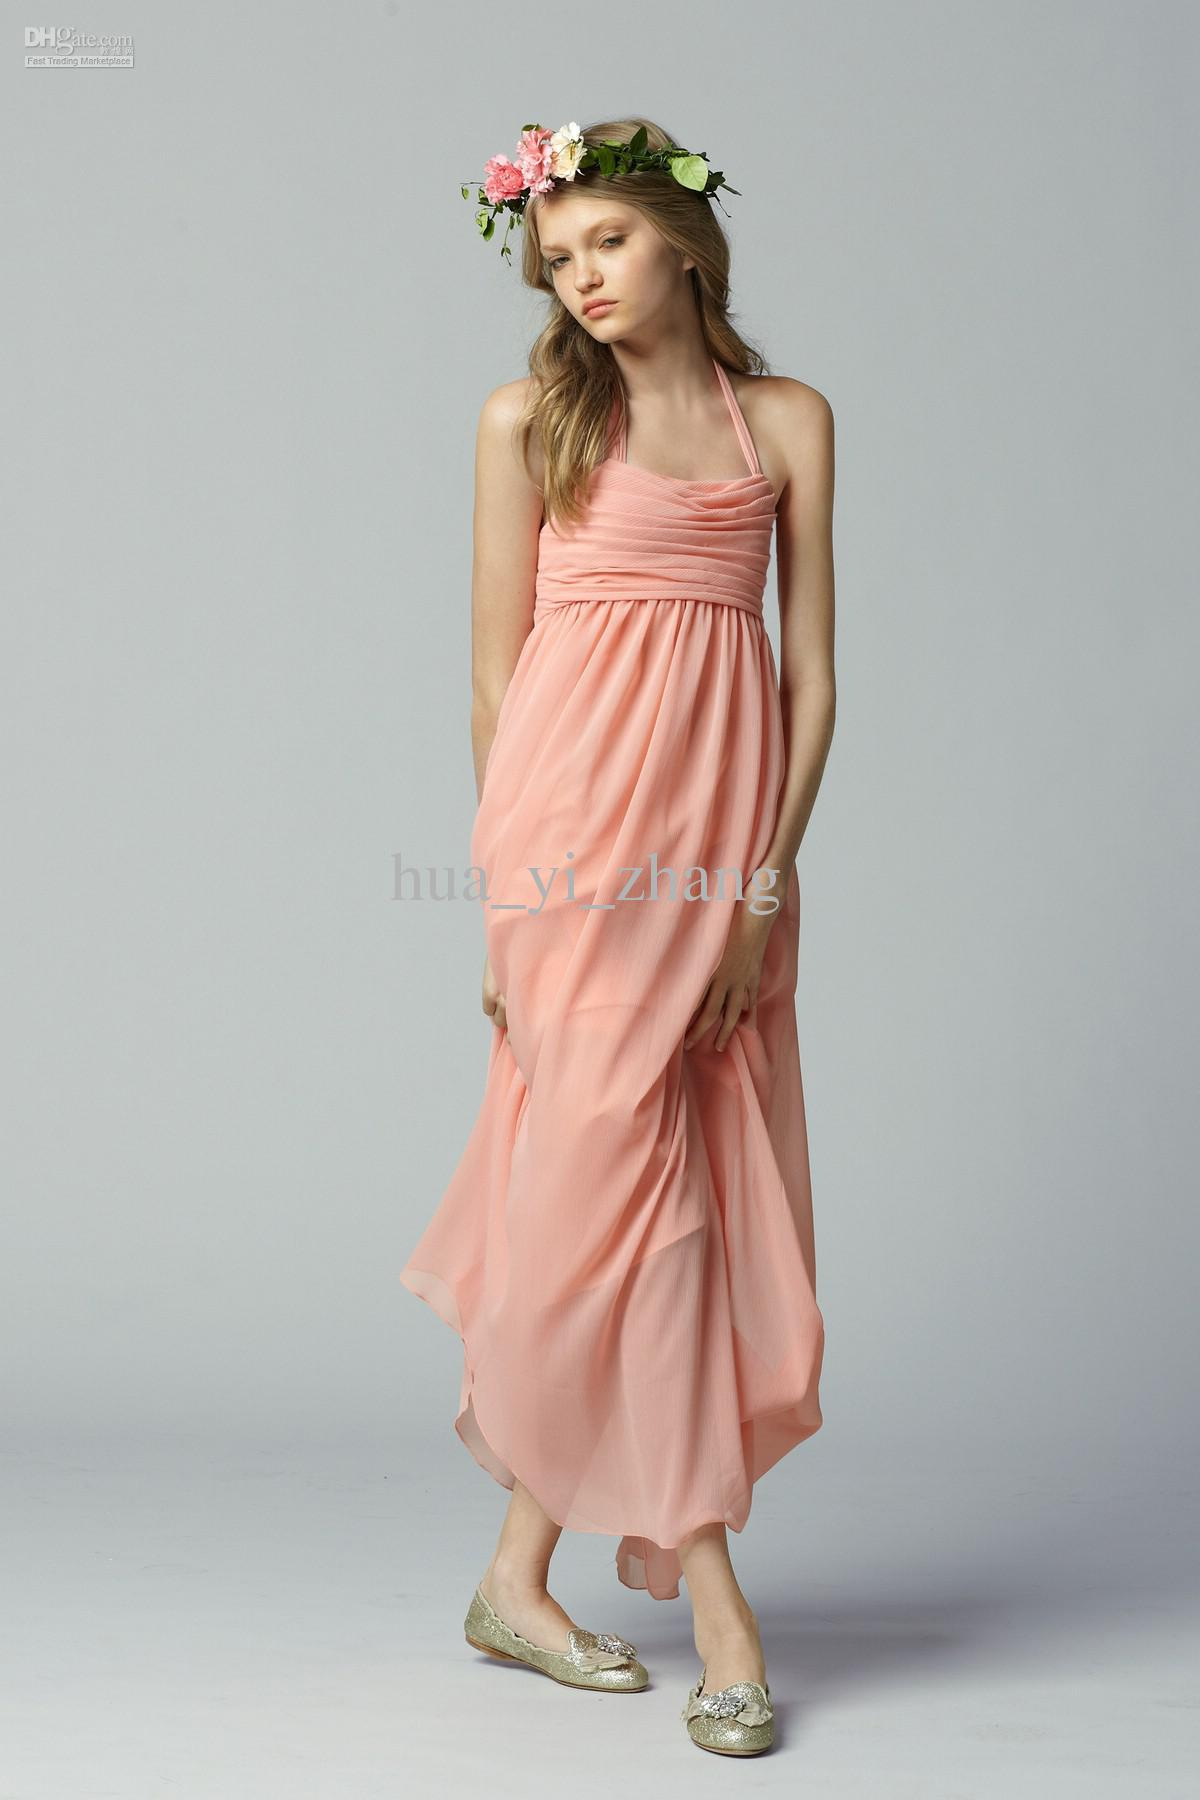 2013 coral bridesmaid dresses beach wedding a line halter neckline 2013 coral bridesmaid dresses beach wedding a line halter neckline ruffle chiffon ankle length summer dresses zj079 bridesmaide dresses bridesmaids dresses ombrellifo Choice Image